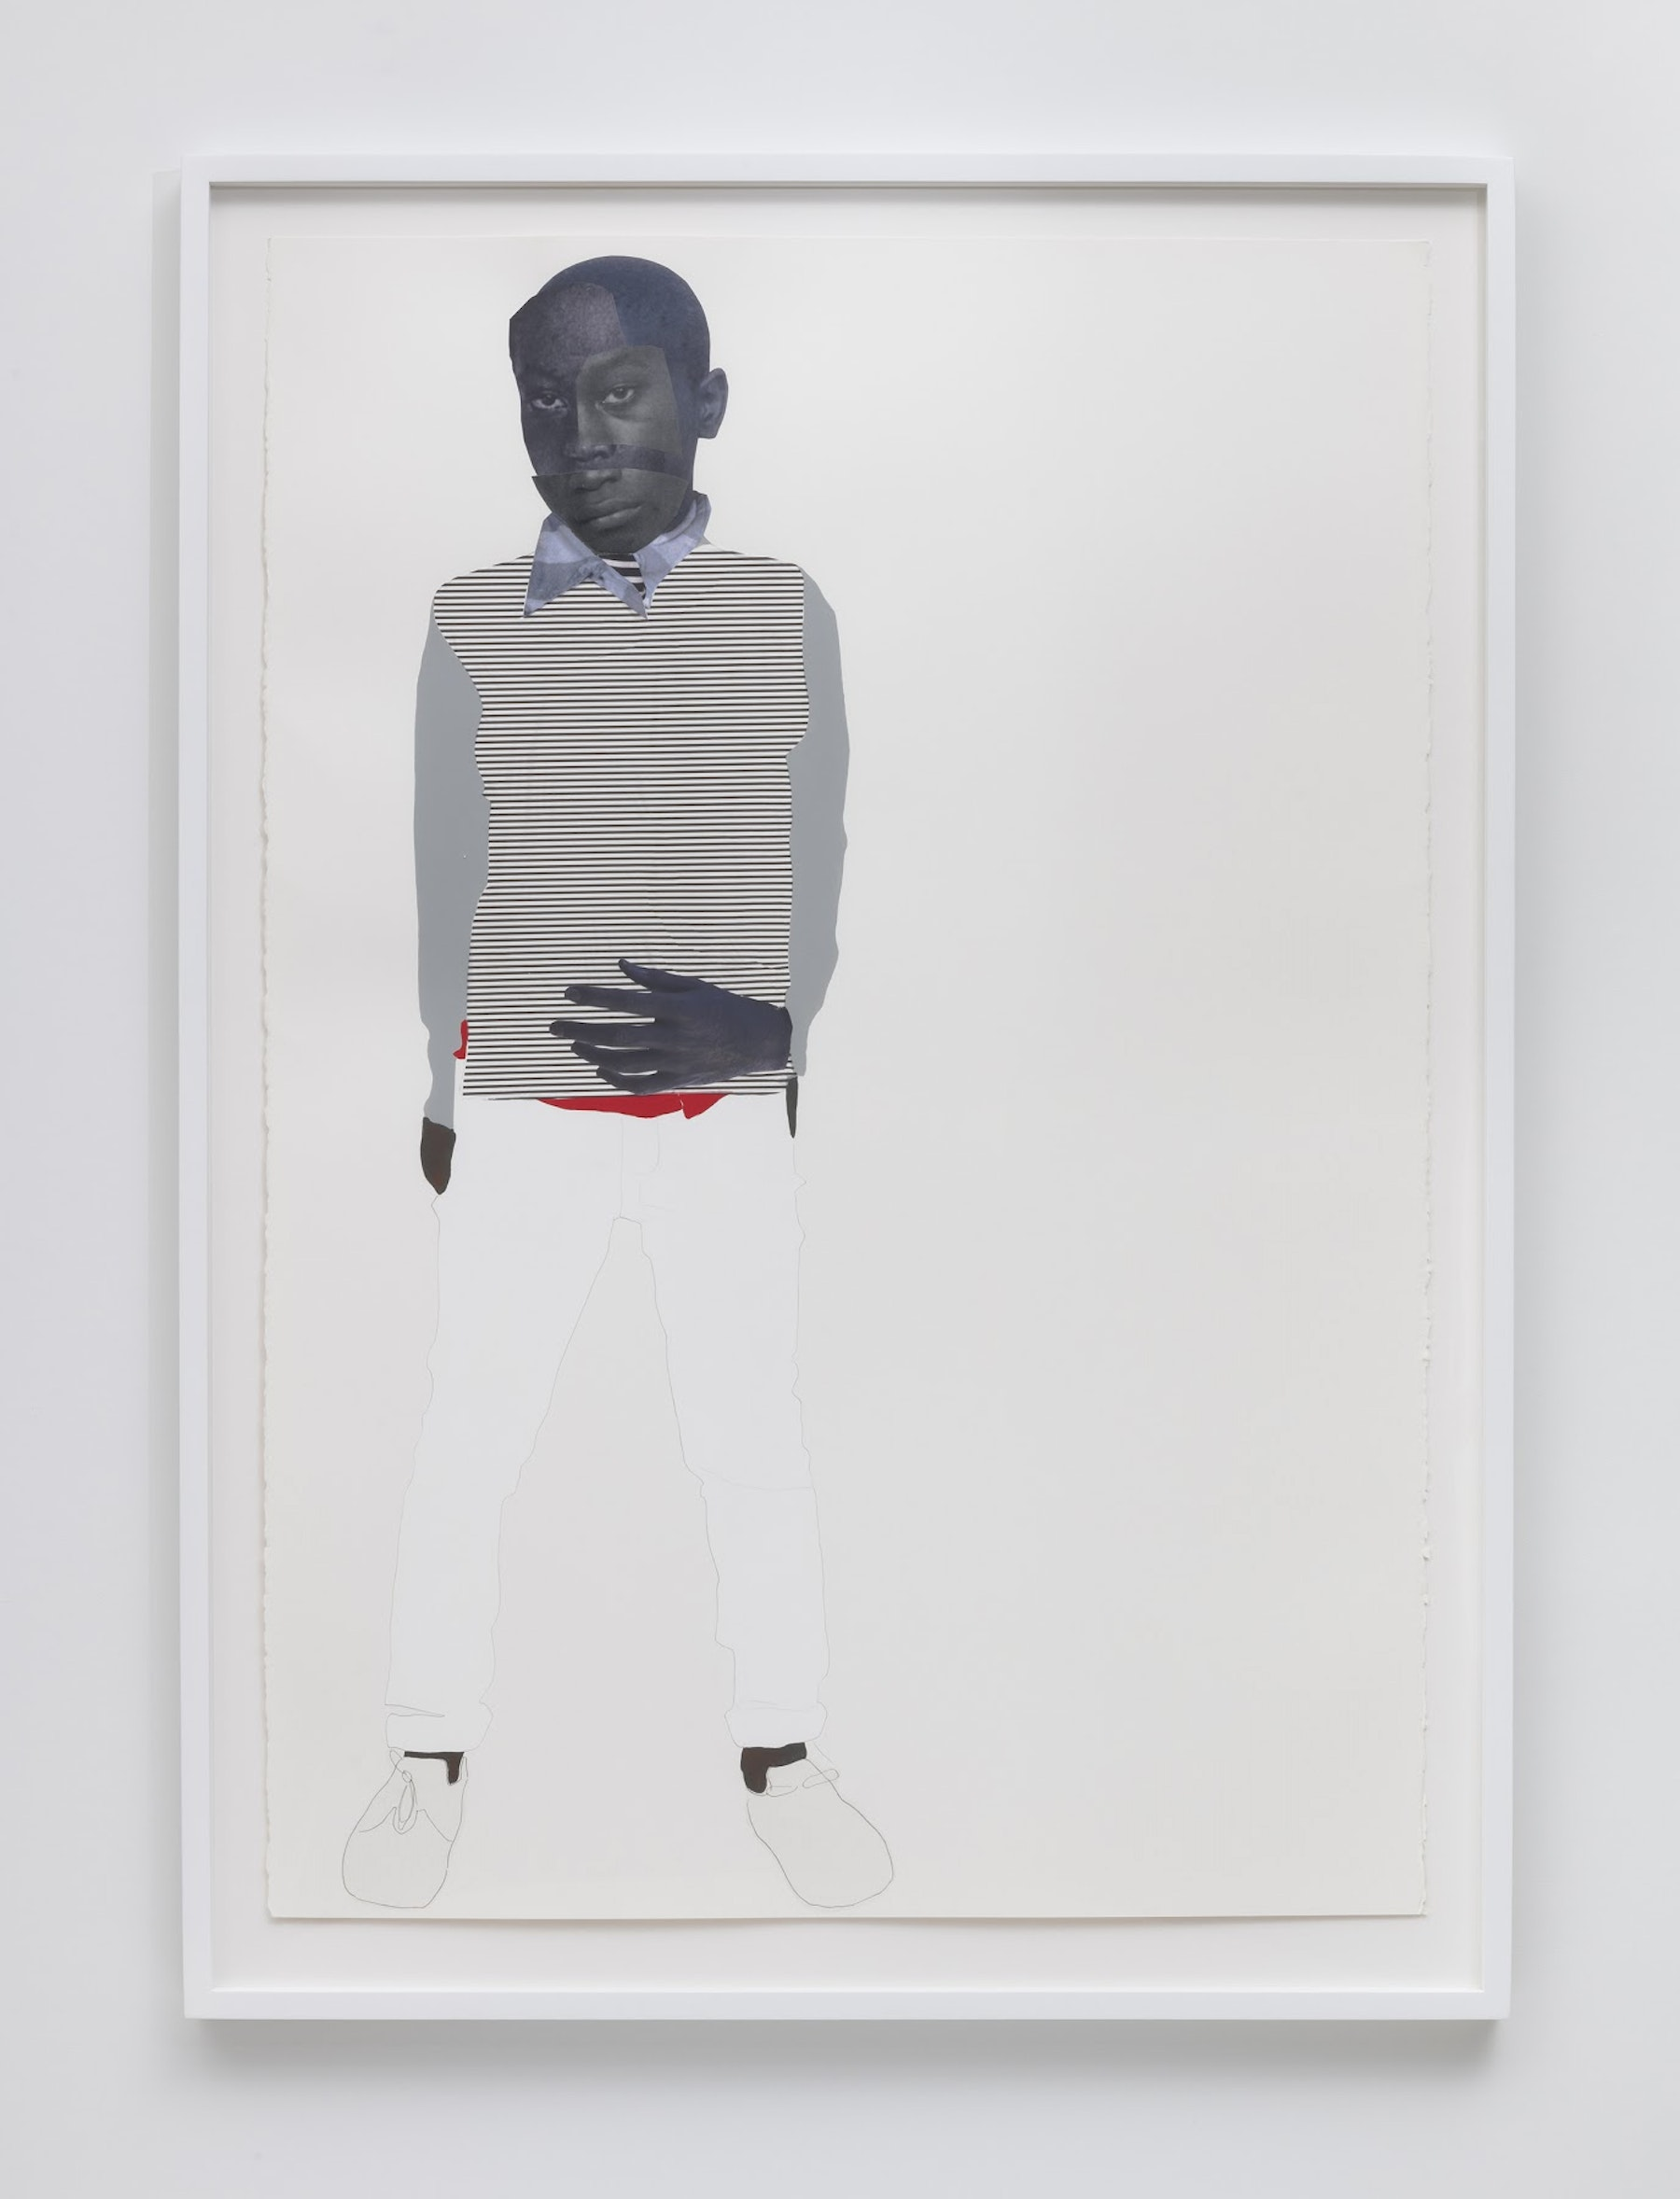 "Deborah Roberts ""Stinney (Nessun Dorma Series),"" 2019 Mixed media collage on paper 60 x 40"" [HxW] (152.4 x 101.6 cm) paper size, 67 x 48 x 2.25"" [HxWxD] (170.18 x 121.92 x 5.71 cm) framed Inventory #ROB416 Courtesy of the artist and Vielmetter Los Angeles Photo credit: Robert Wedemeyer"